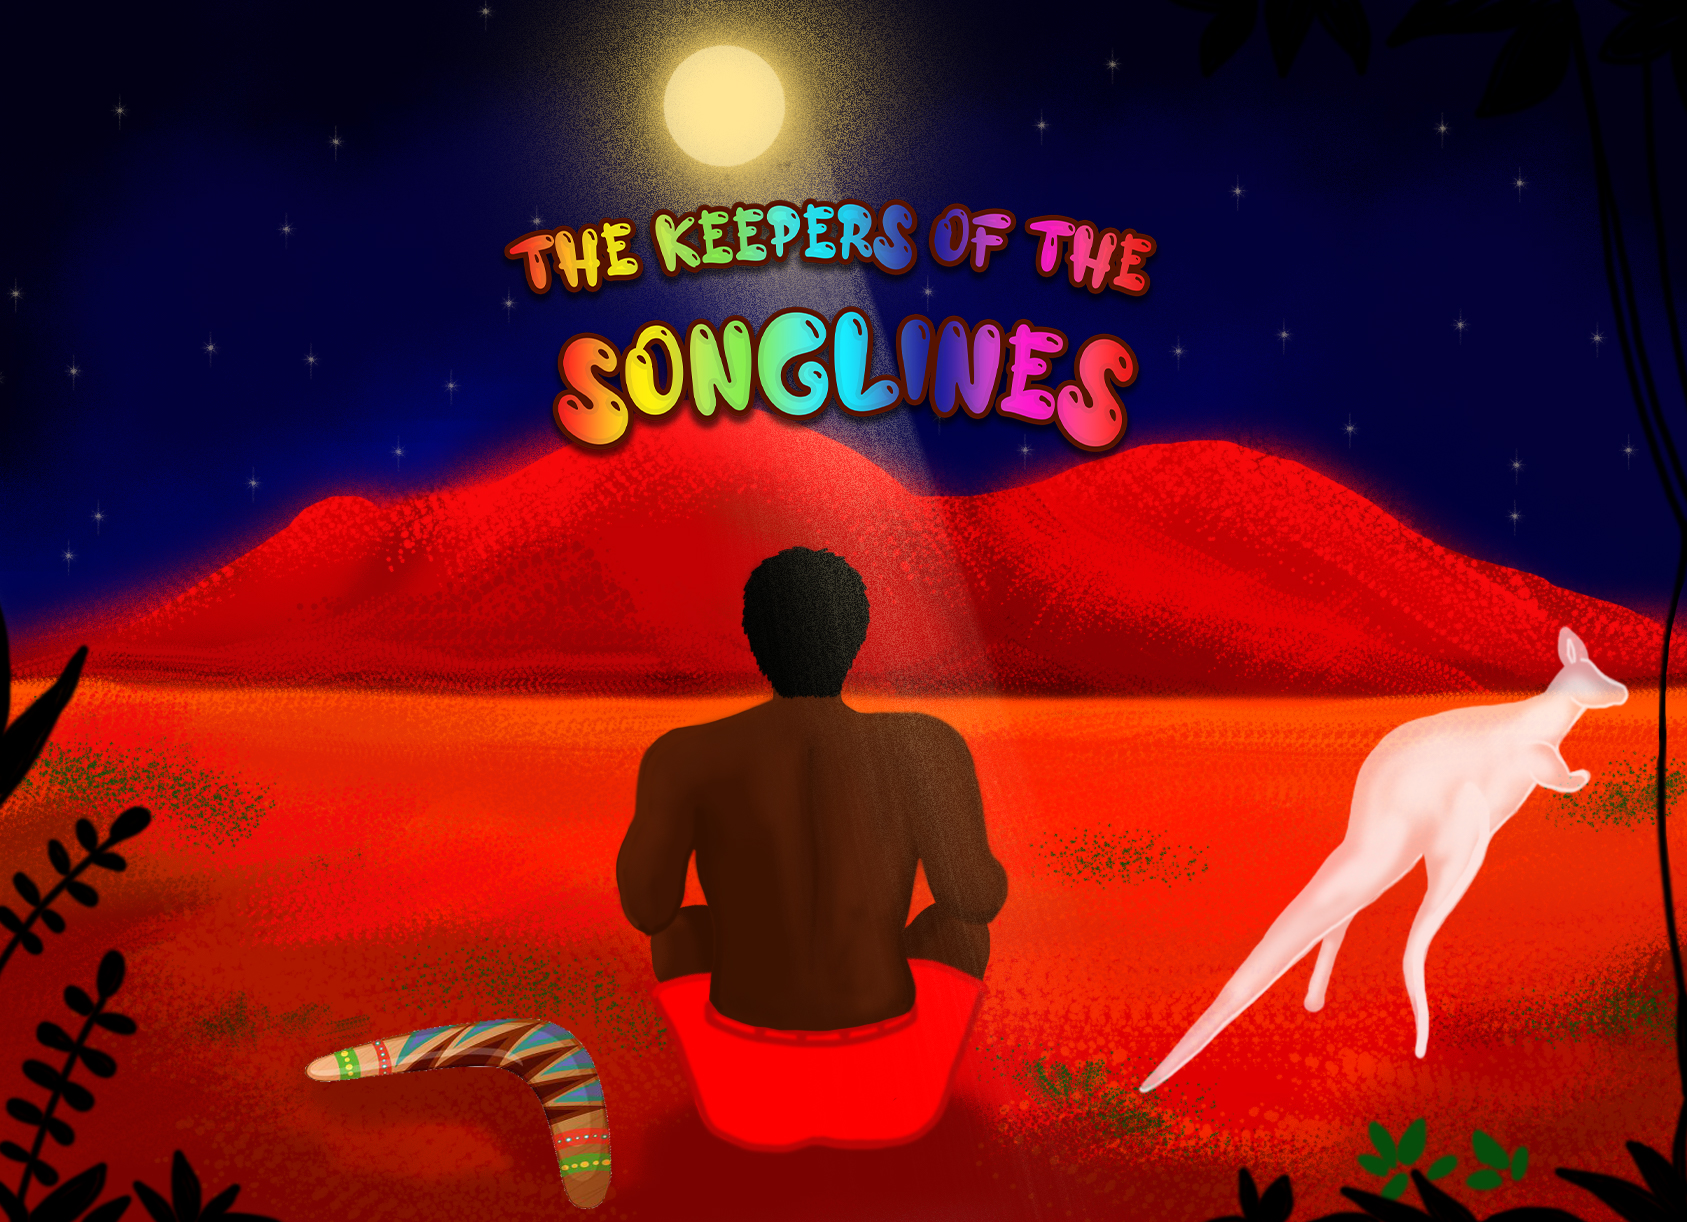 The Keepers of the Songlines